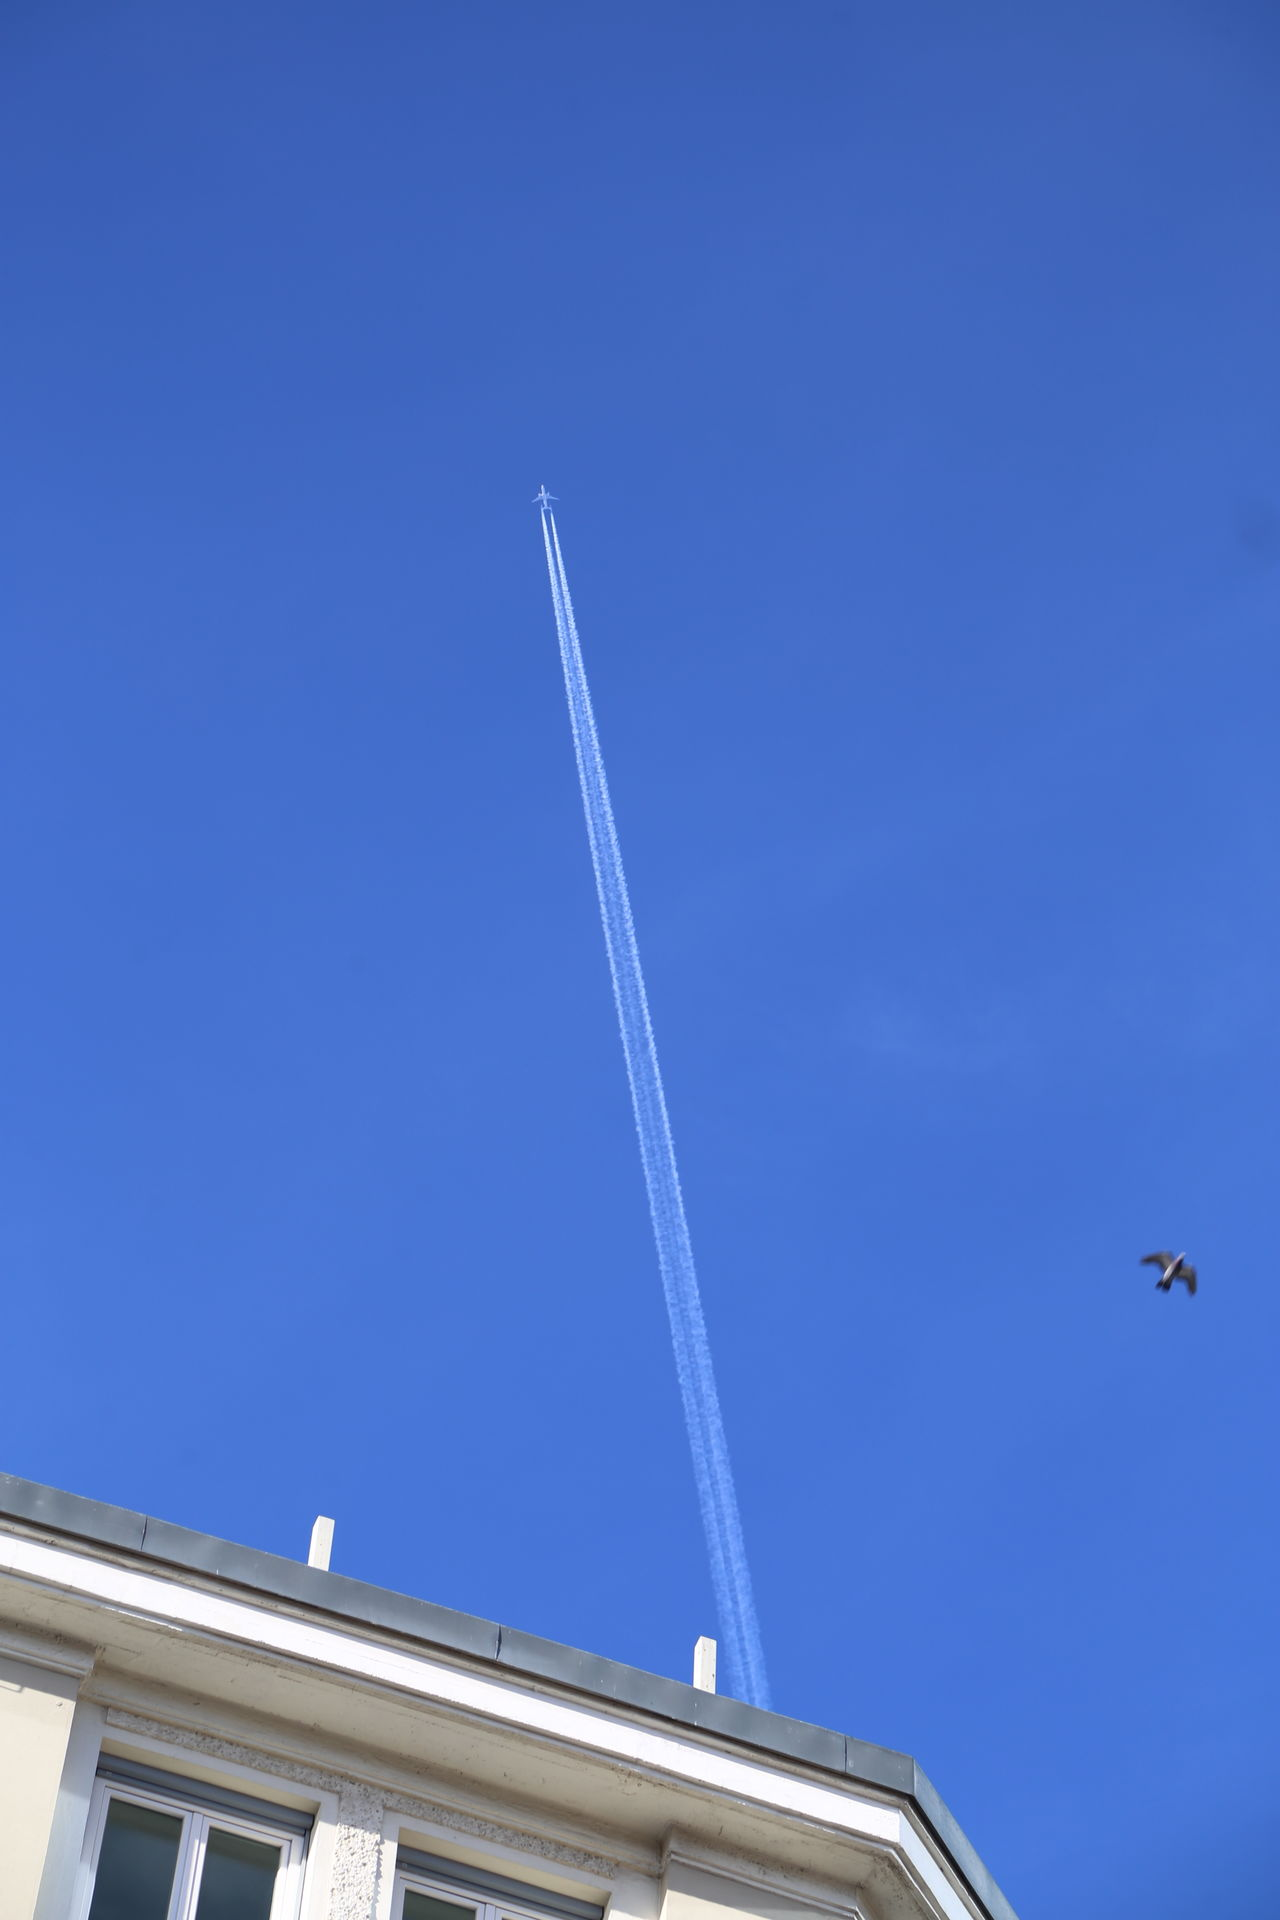 Airplane Blue Clear Sky Contrail Day High Above House Roof Low Angle View No People Outdoors Sky Summer Vapor Trail